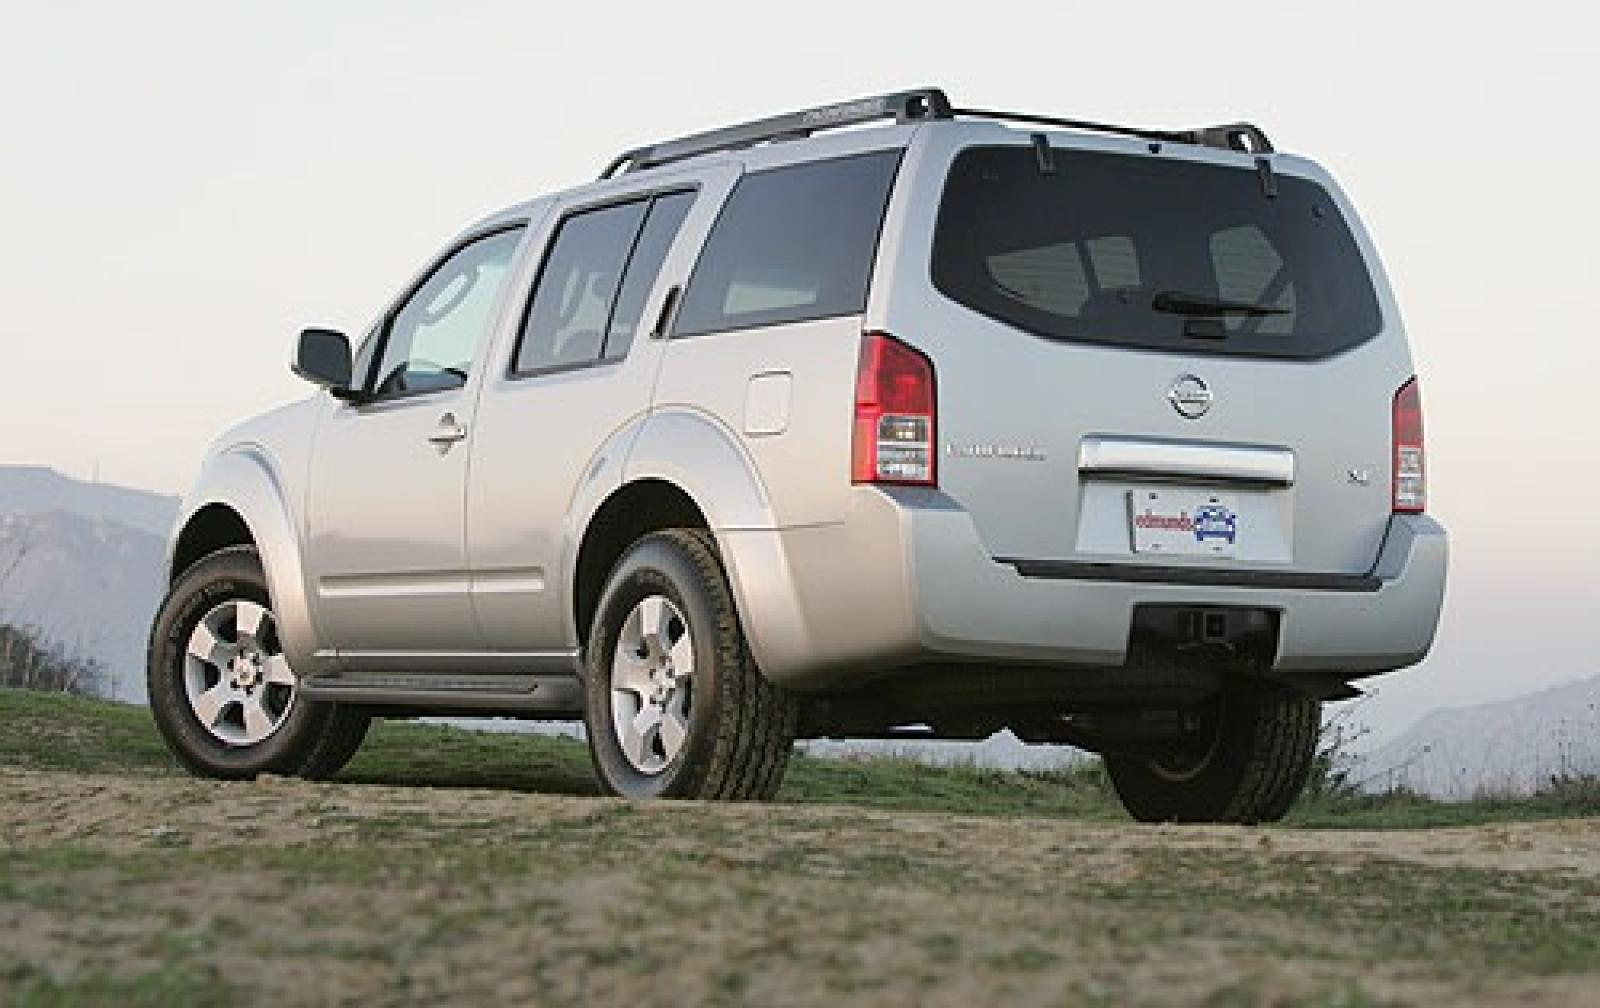 2005 nissan pathfinder information and photos zombiedrive. Black Bedroom Furniture Sets. Home Design Ideas